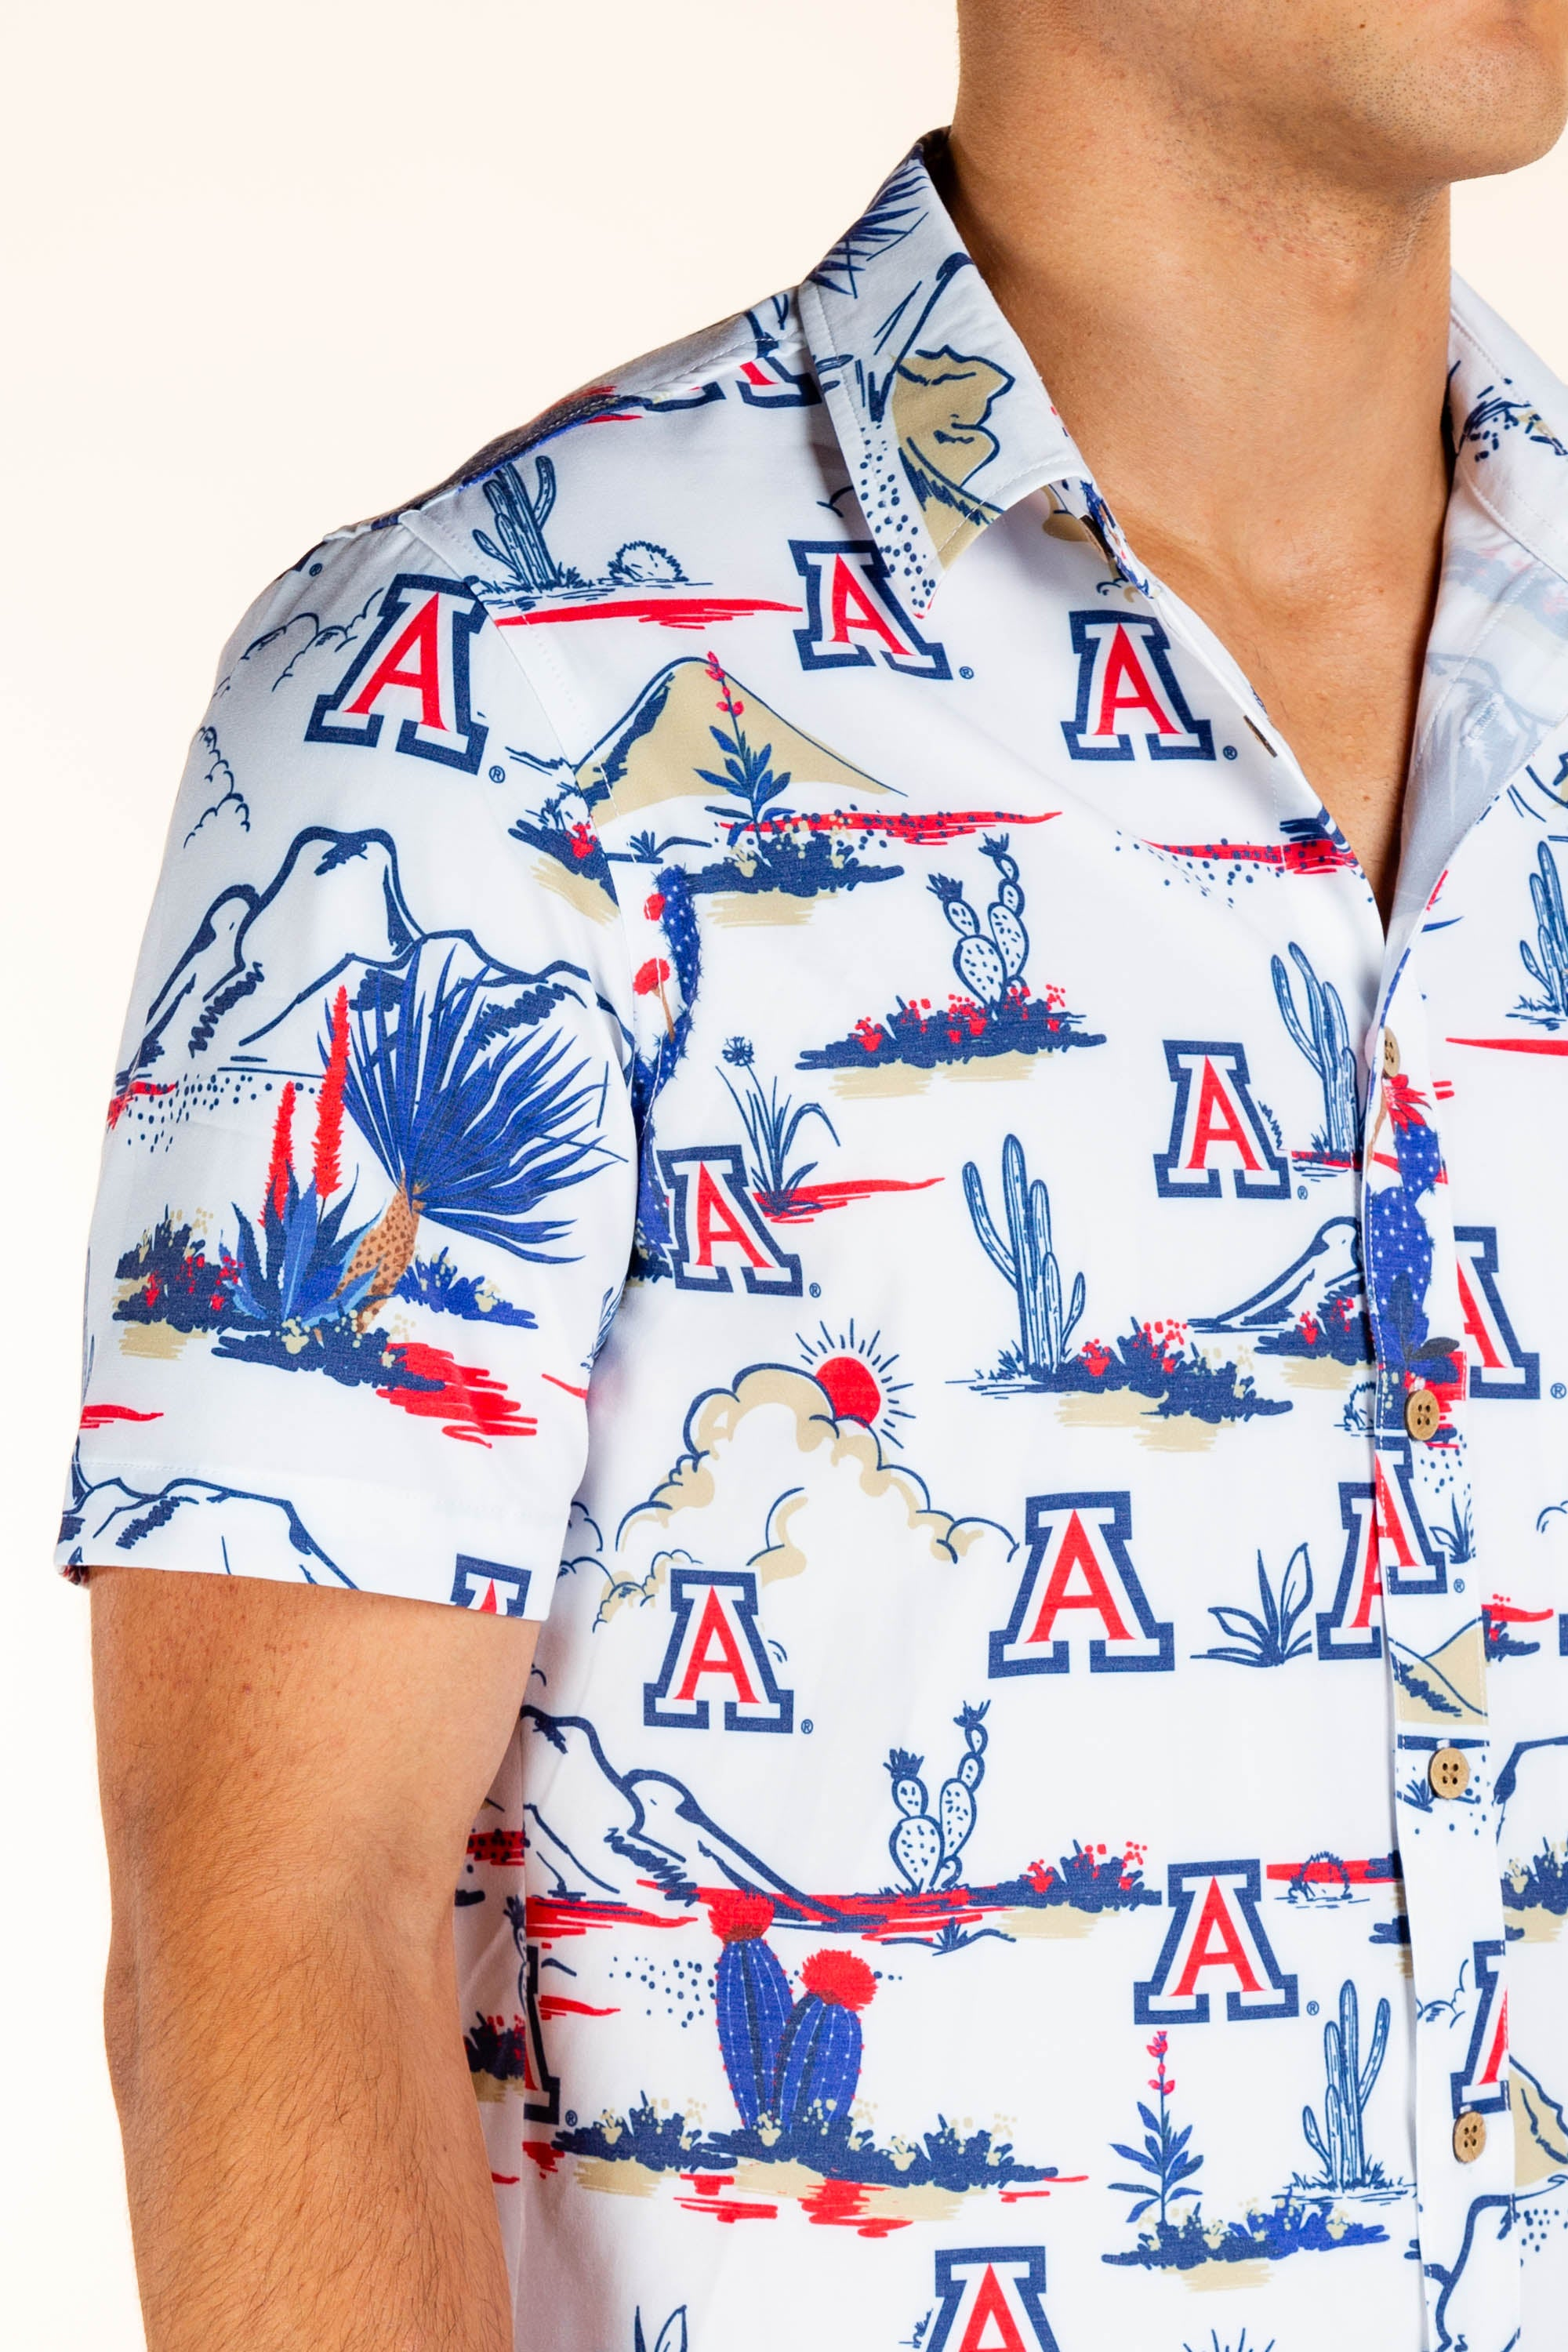 White U of A shirt